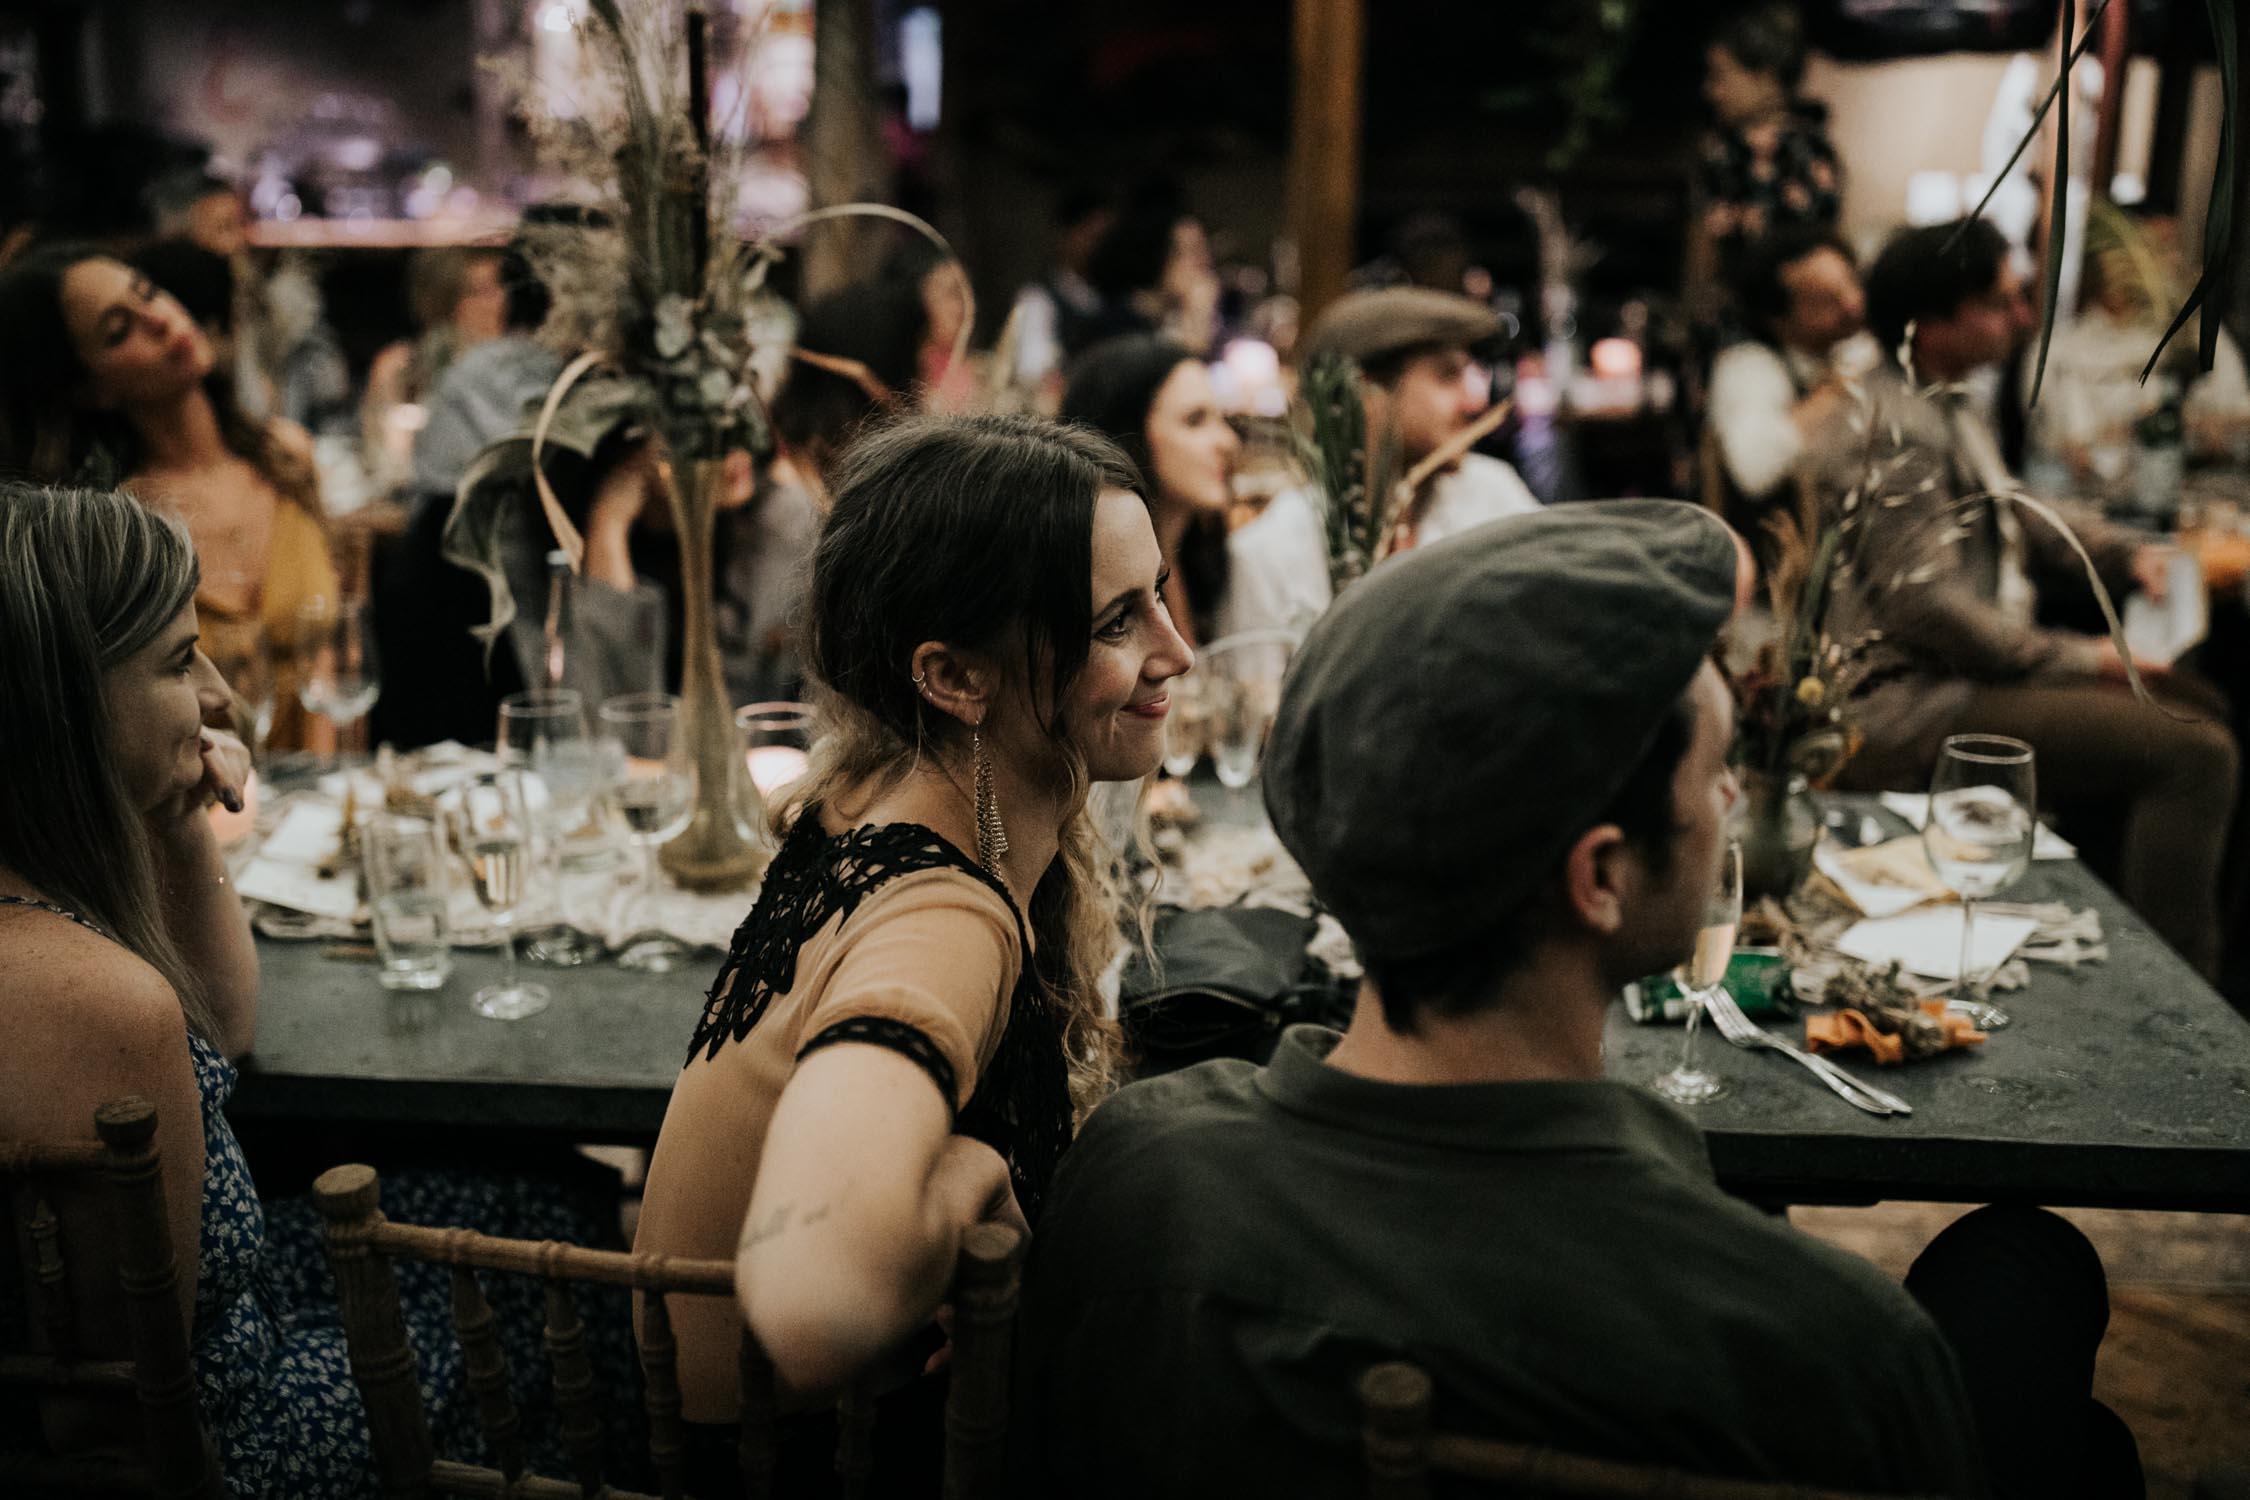 Natural light photo of guests in wedding reception at night by Vancouver Wedding Photographer